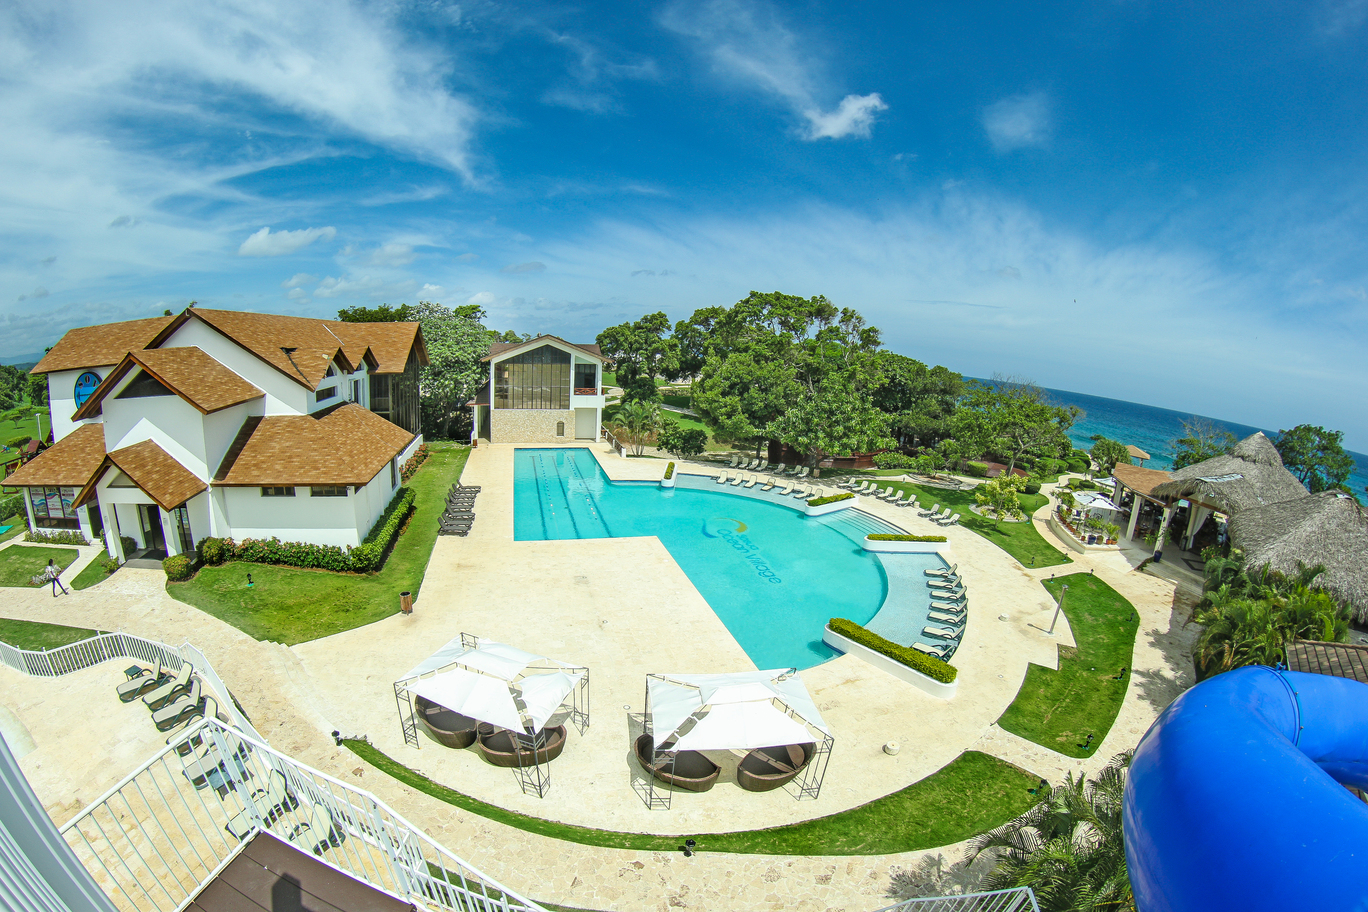 Dominican Republic Real Estate for Sale or Rent.